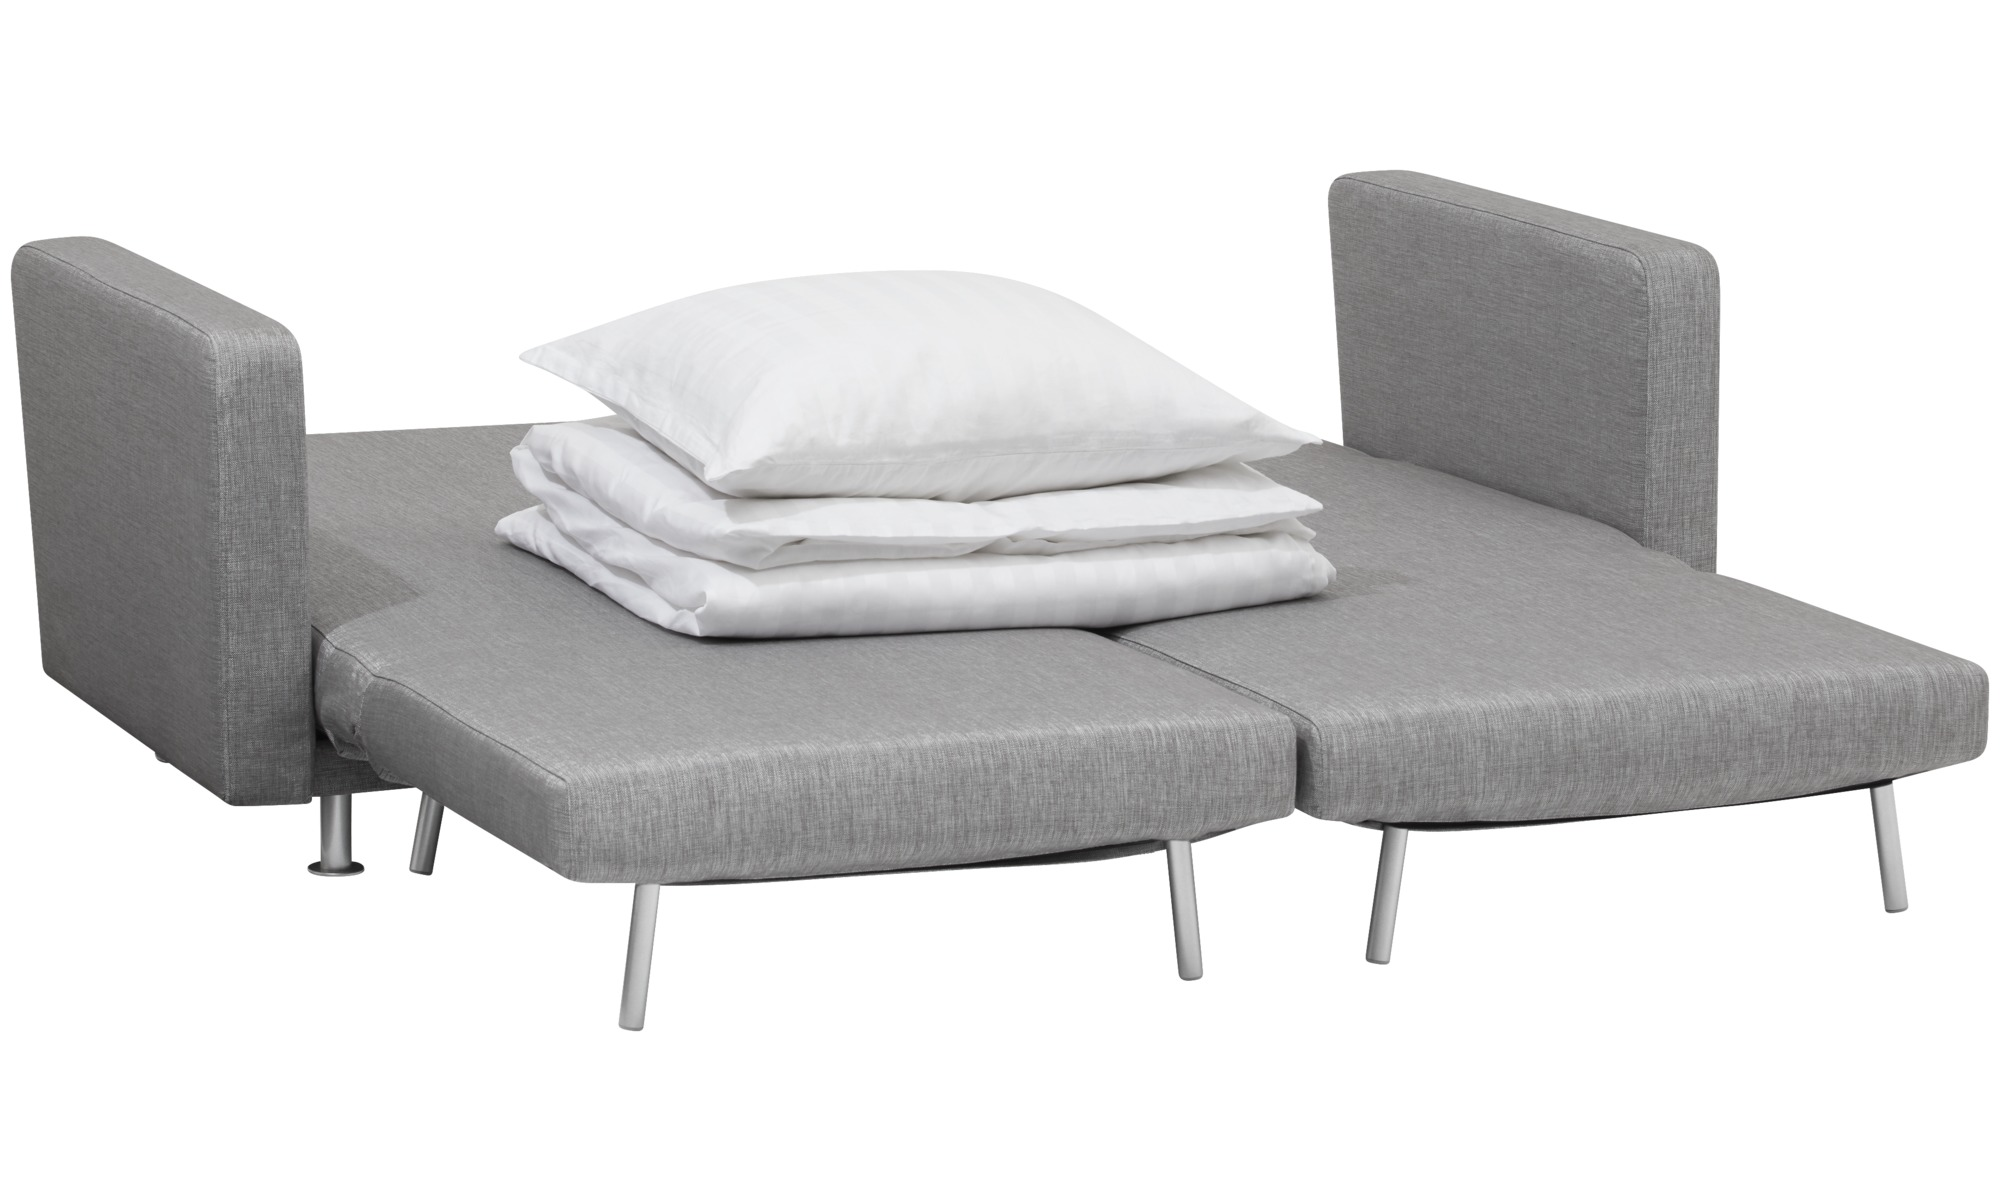 boconcept melo reclining sofa bed decorating with dark leather beds - 2 and sleeping ...